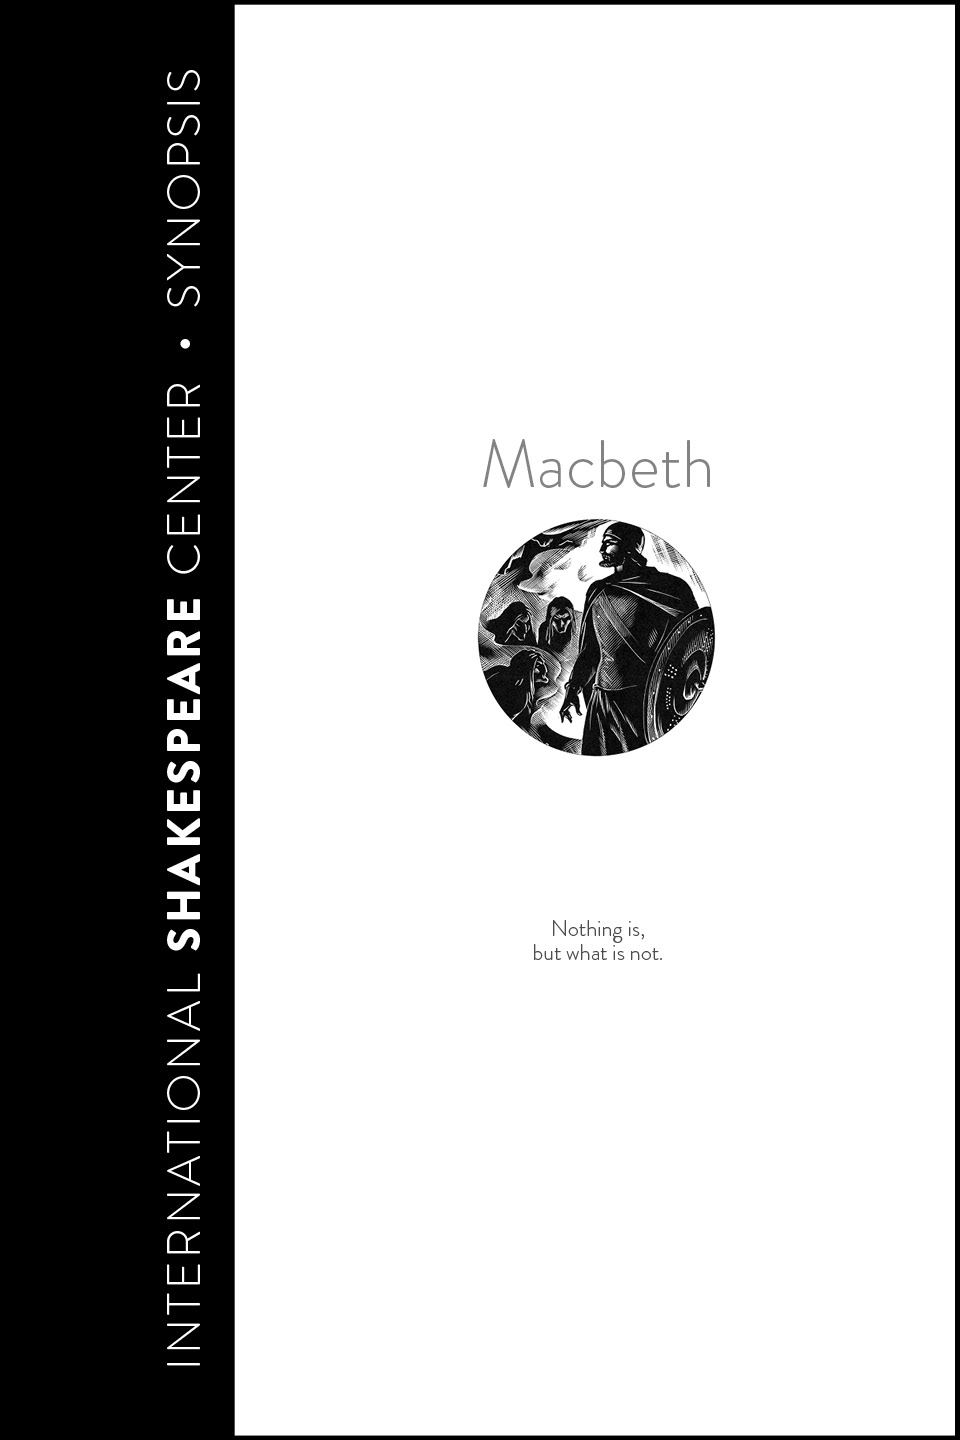 Macbeth • i Read Shakespeare • International Shakespeare Center Santa Fe • Robin Williams